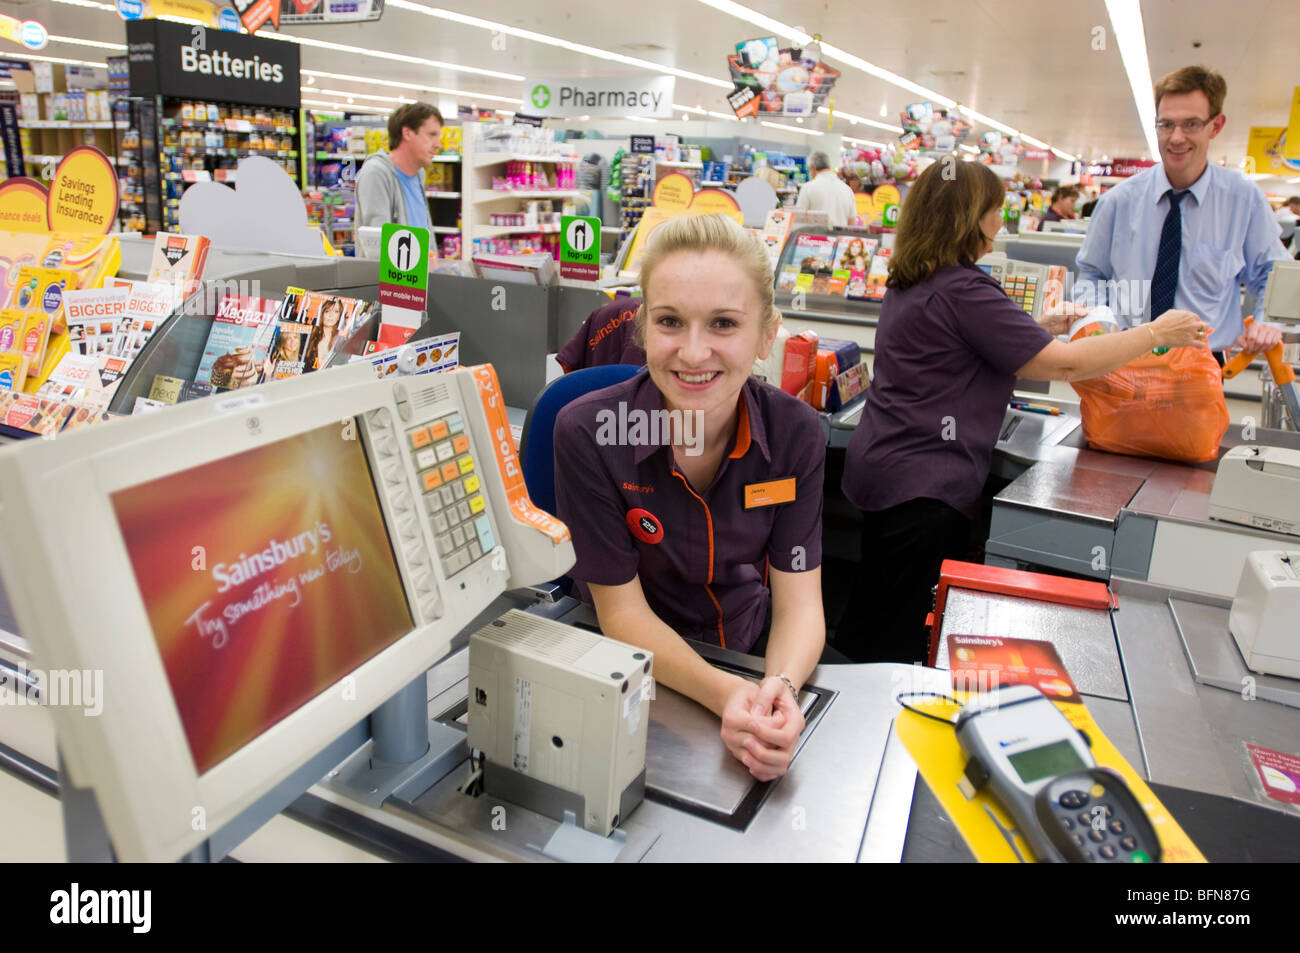 Sainsbury's supermarket. Smiling girl in uniform at the till of a checkout desk. - Stock Image